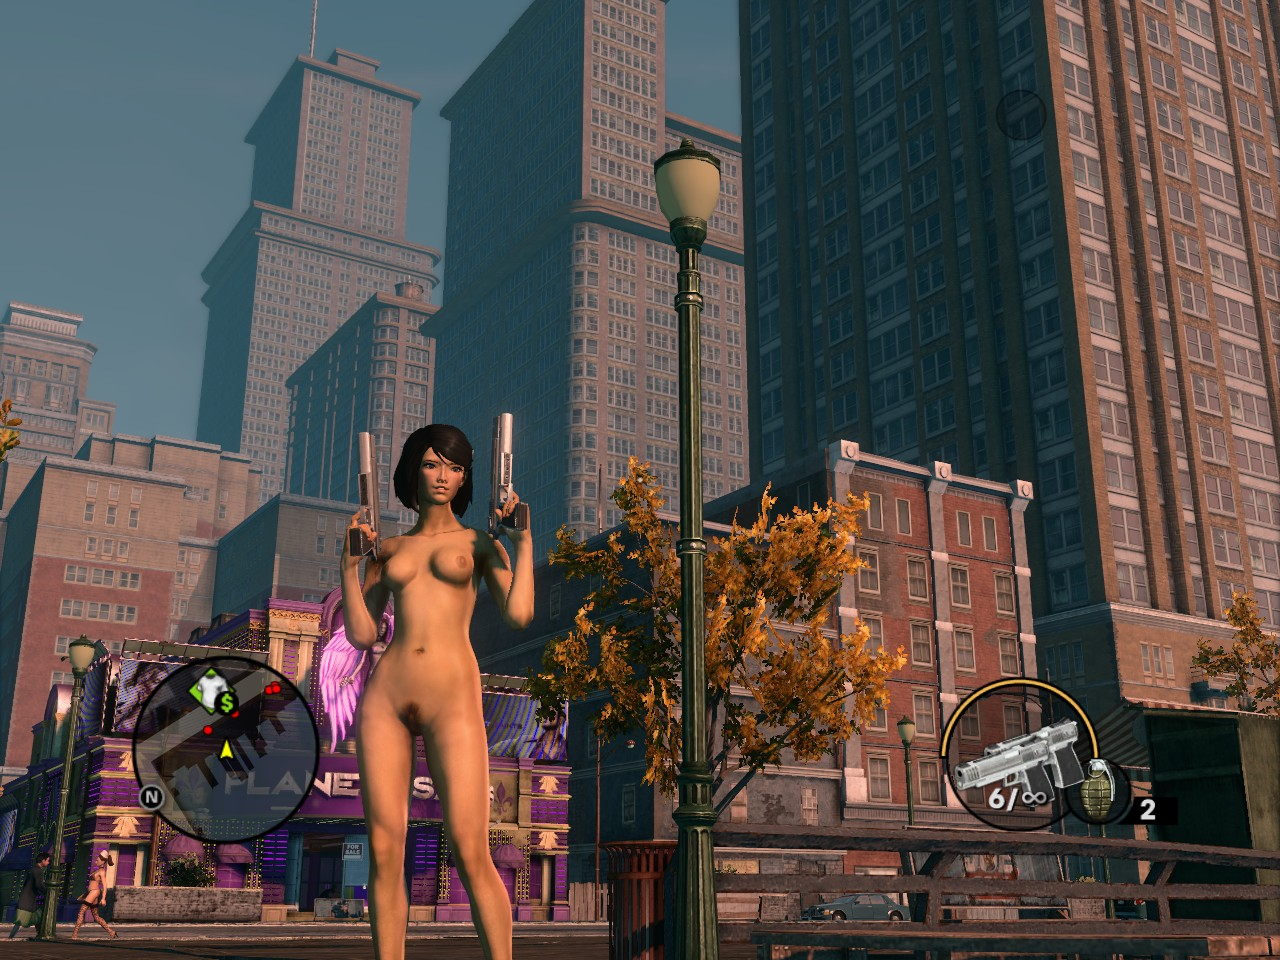 Saints row 3 nude mod indir exposed photo